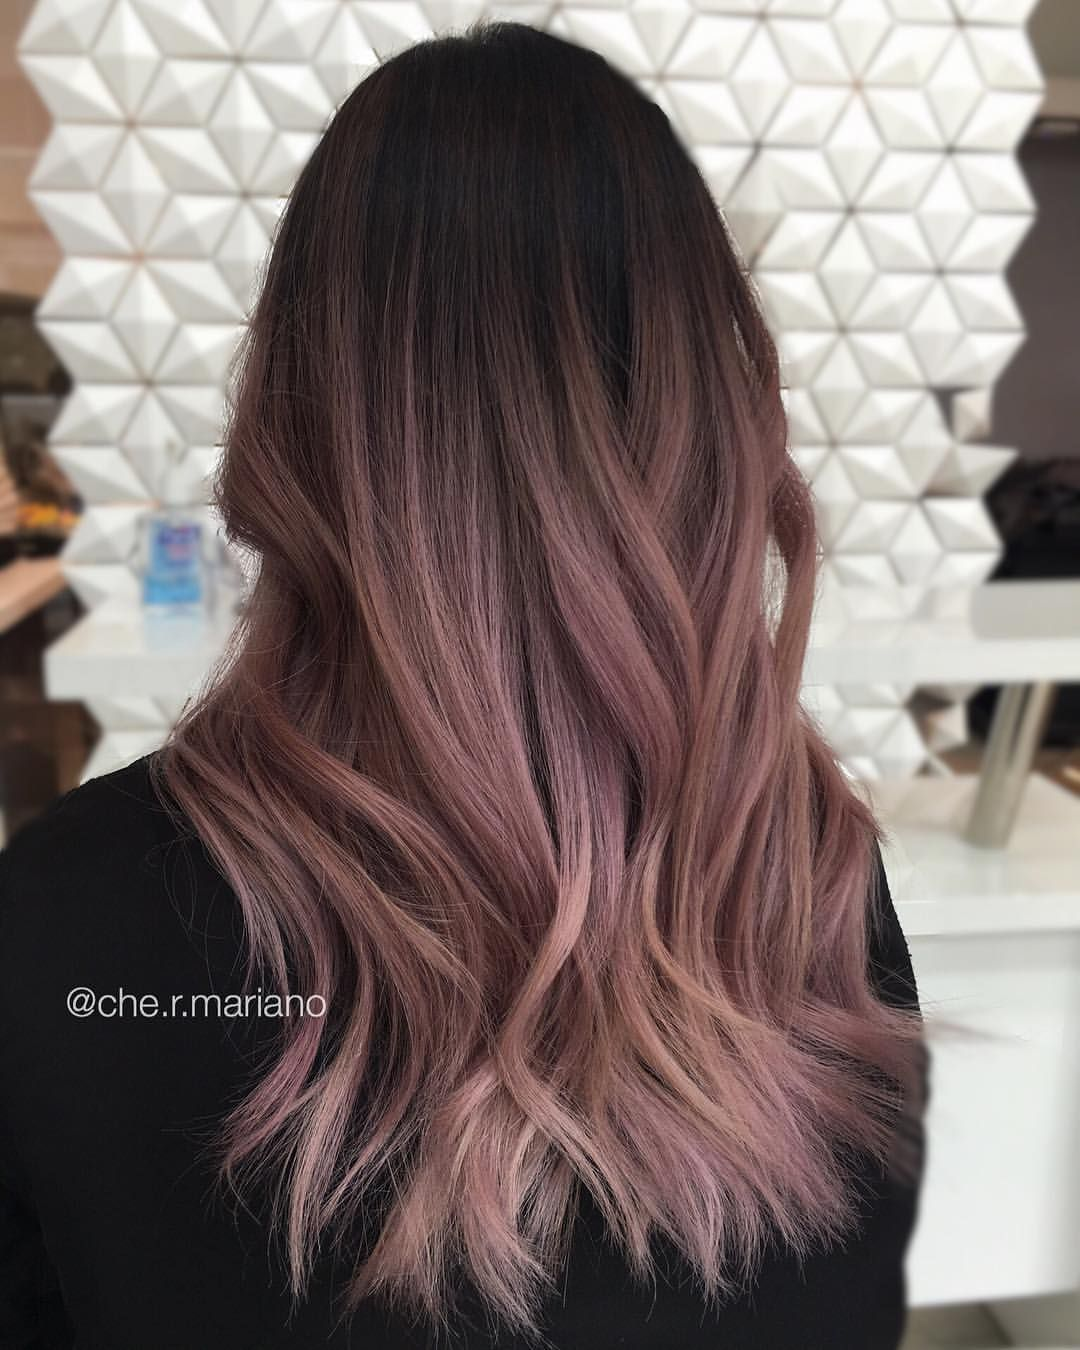 1 151 Likes 25 Comments Rachelle Mariano Hairstylist Rachellemariano Che On Instagram Loving Hair Inspiration Color Hair Inspo Color Ombre Hair Color